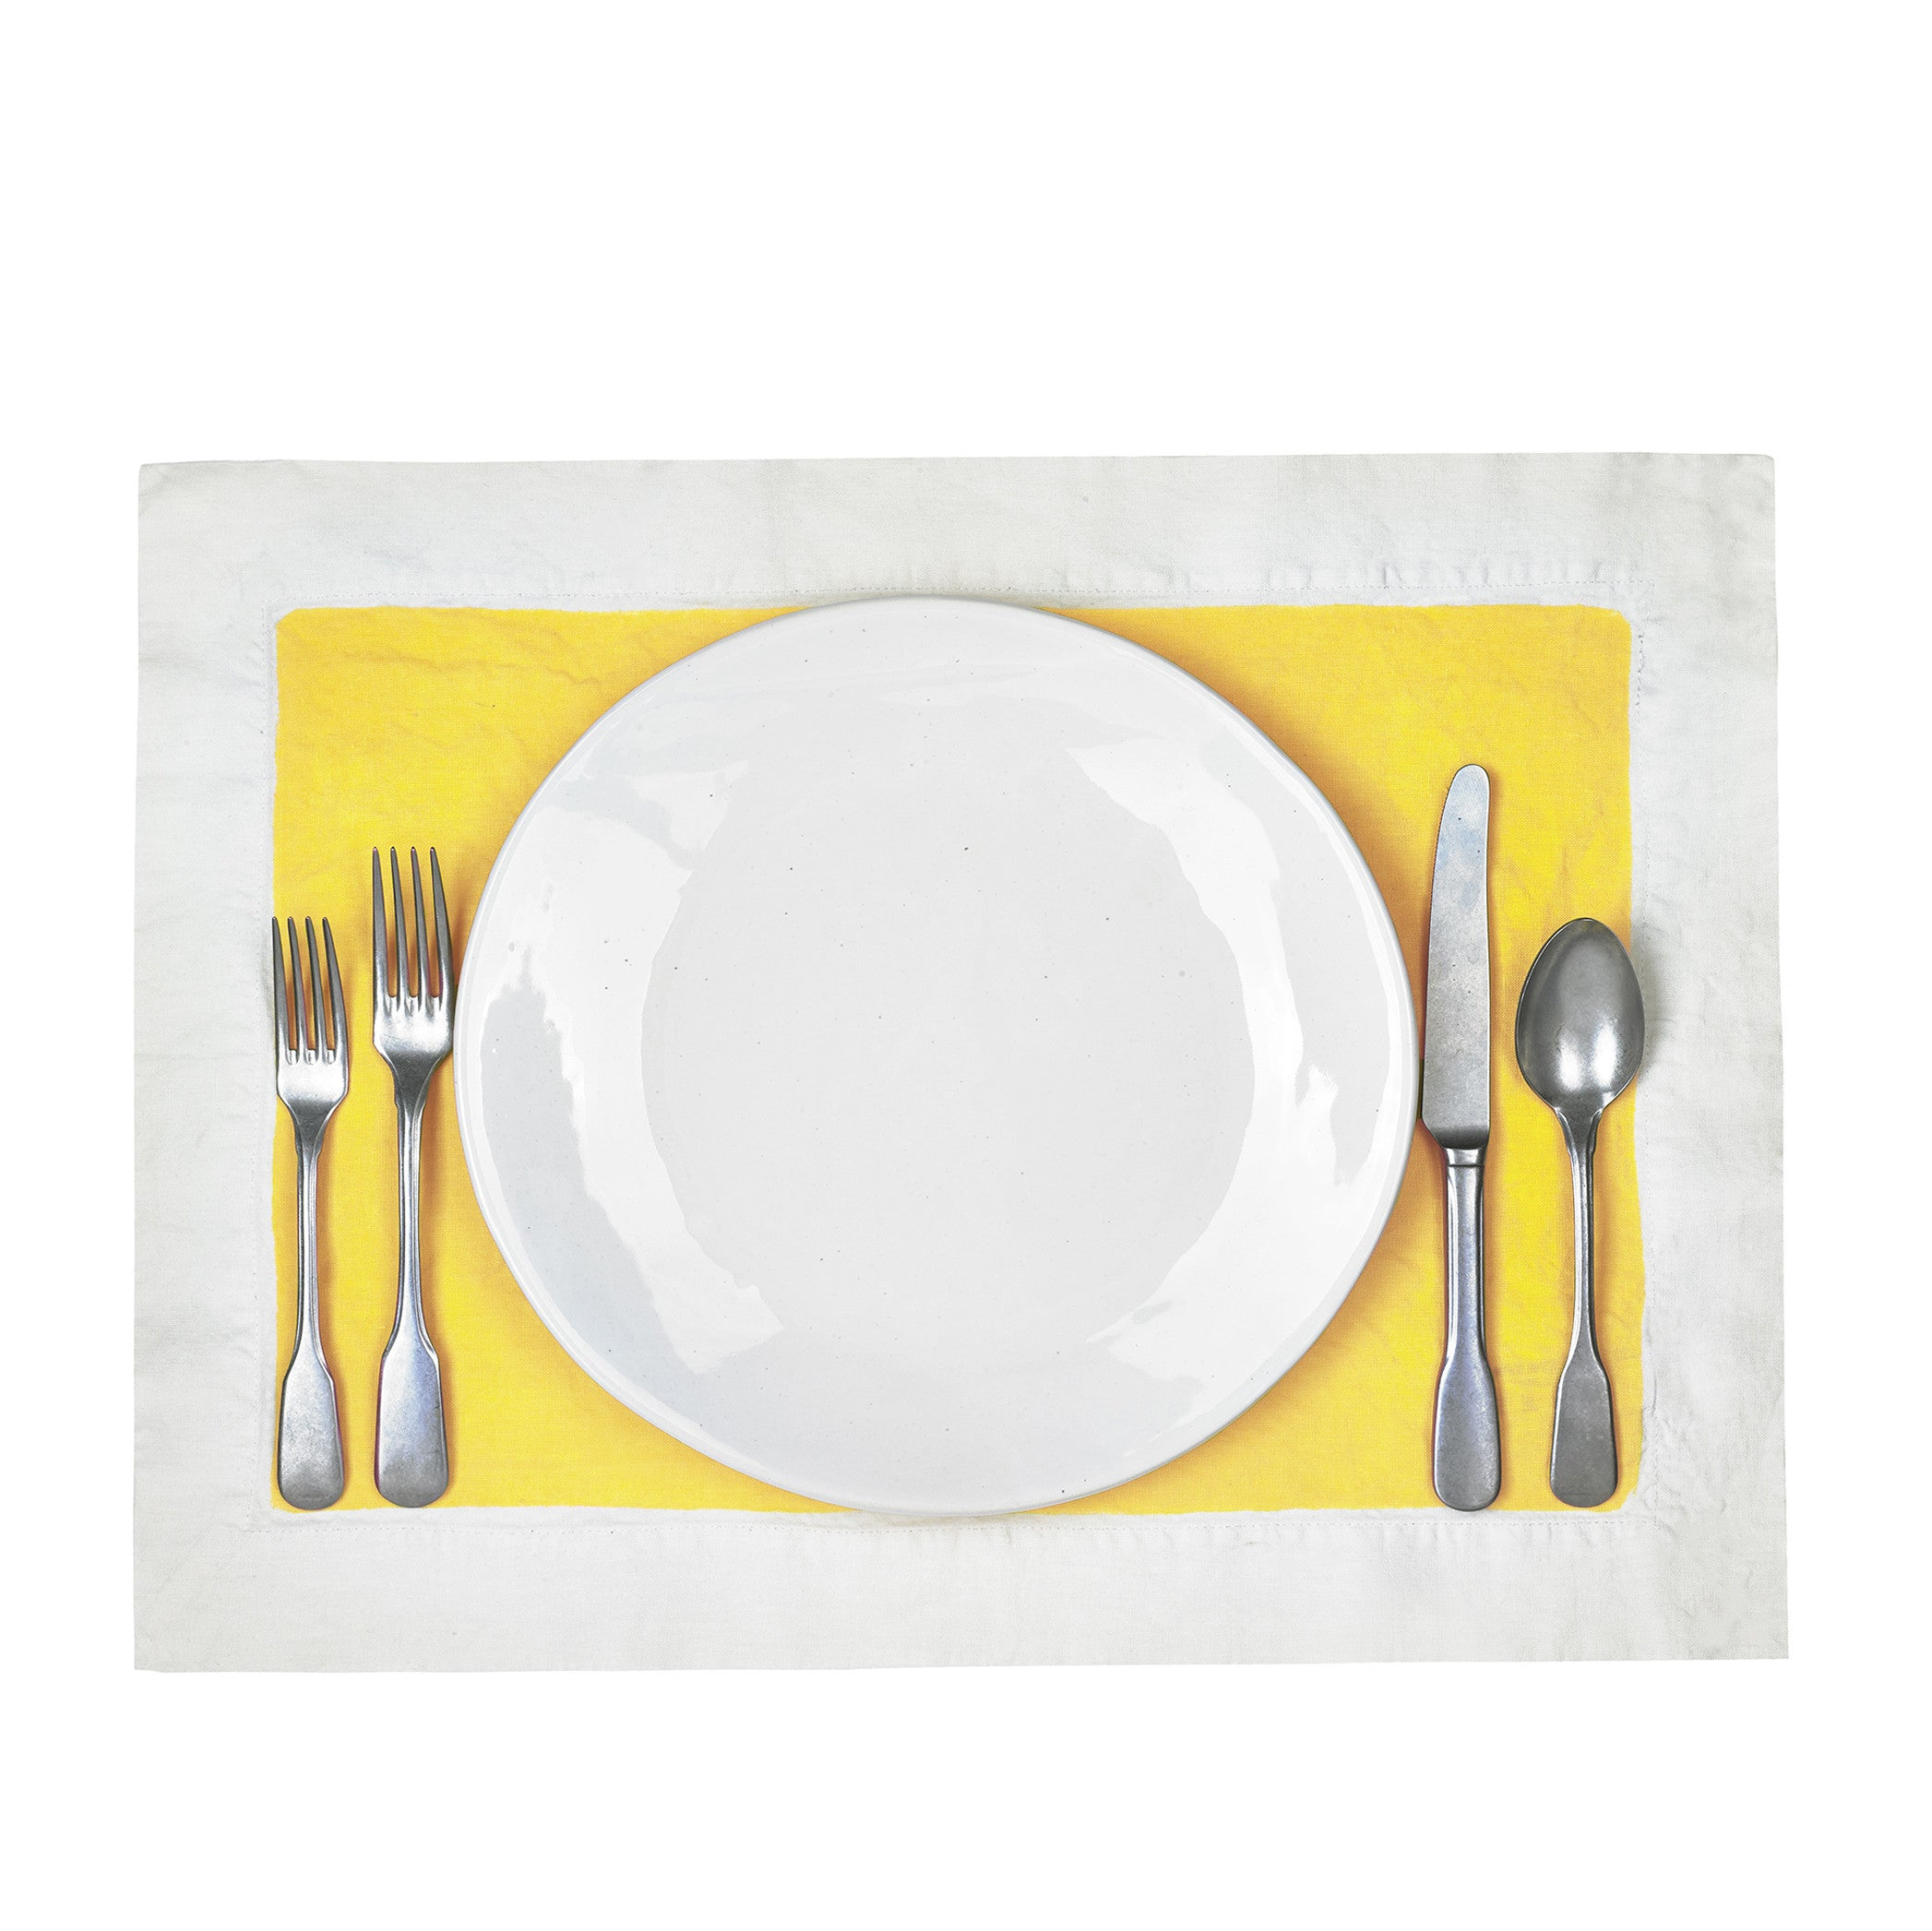 Full Field Linen Placemat in Lemon Yellow